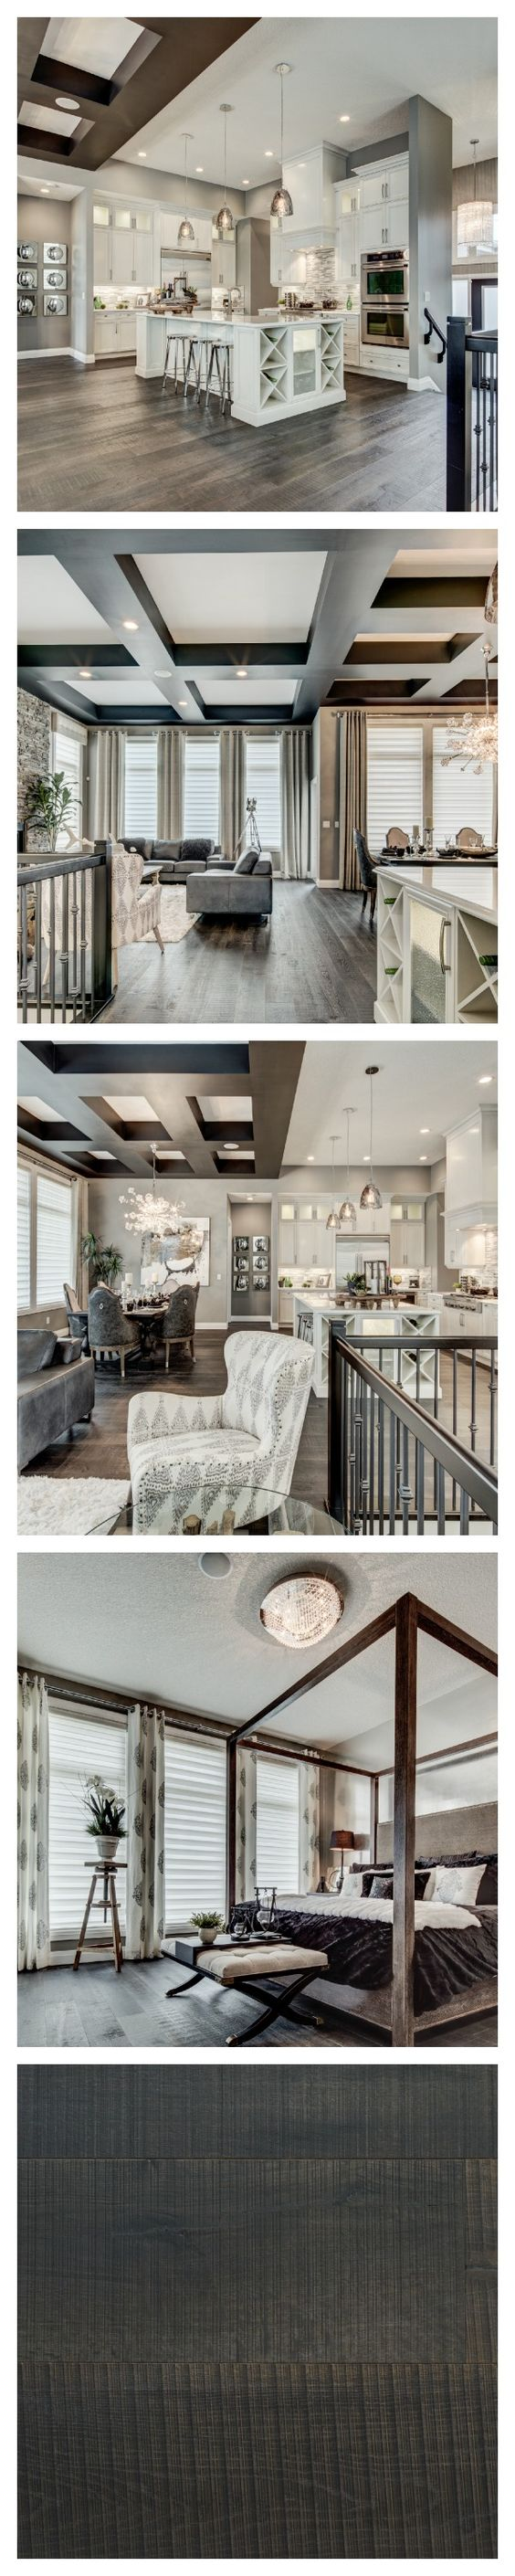 There is a decidedly glamorous edge to this breathtaking model home by Alquinn Homes in Edmonton. The sophisticated palette of greys and creams adds to the luxe appeal. #Farmhouse flooring in the colour Le Bourg.➳ Pinterest: miabutler ♕